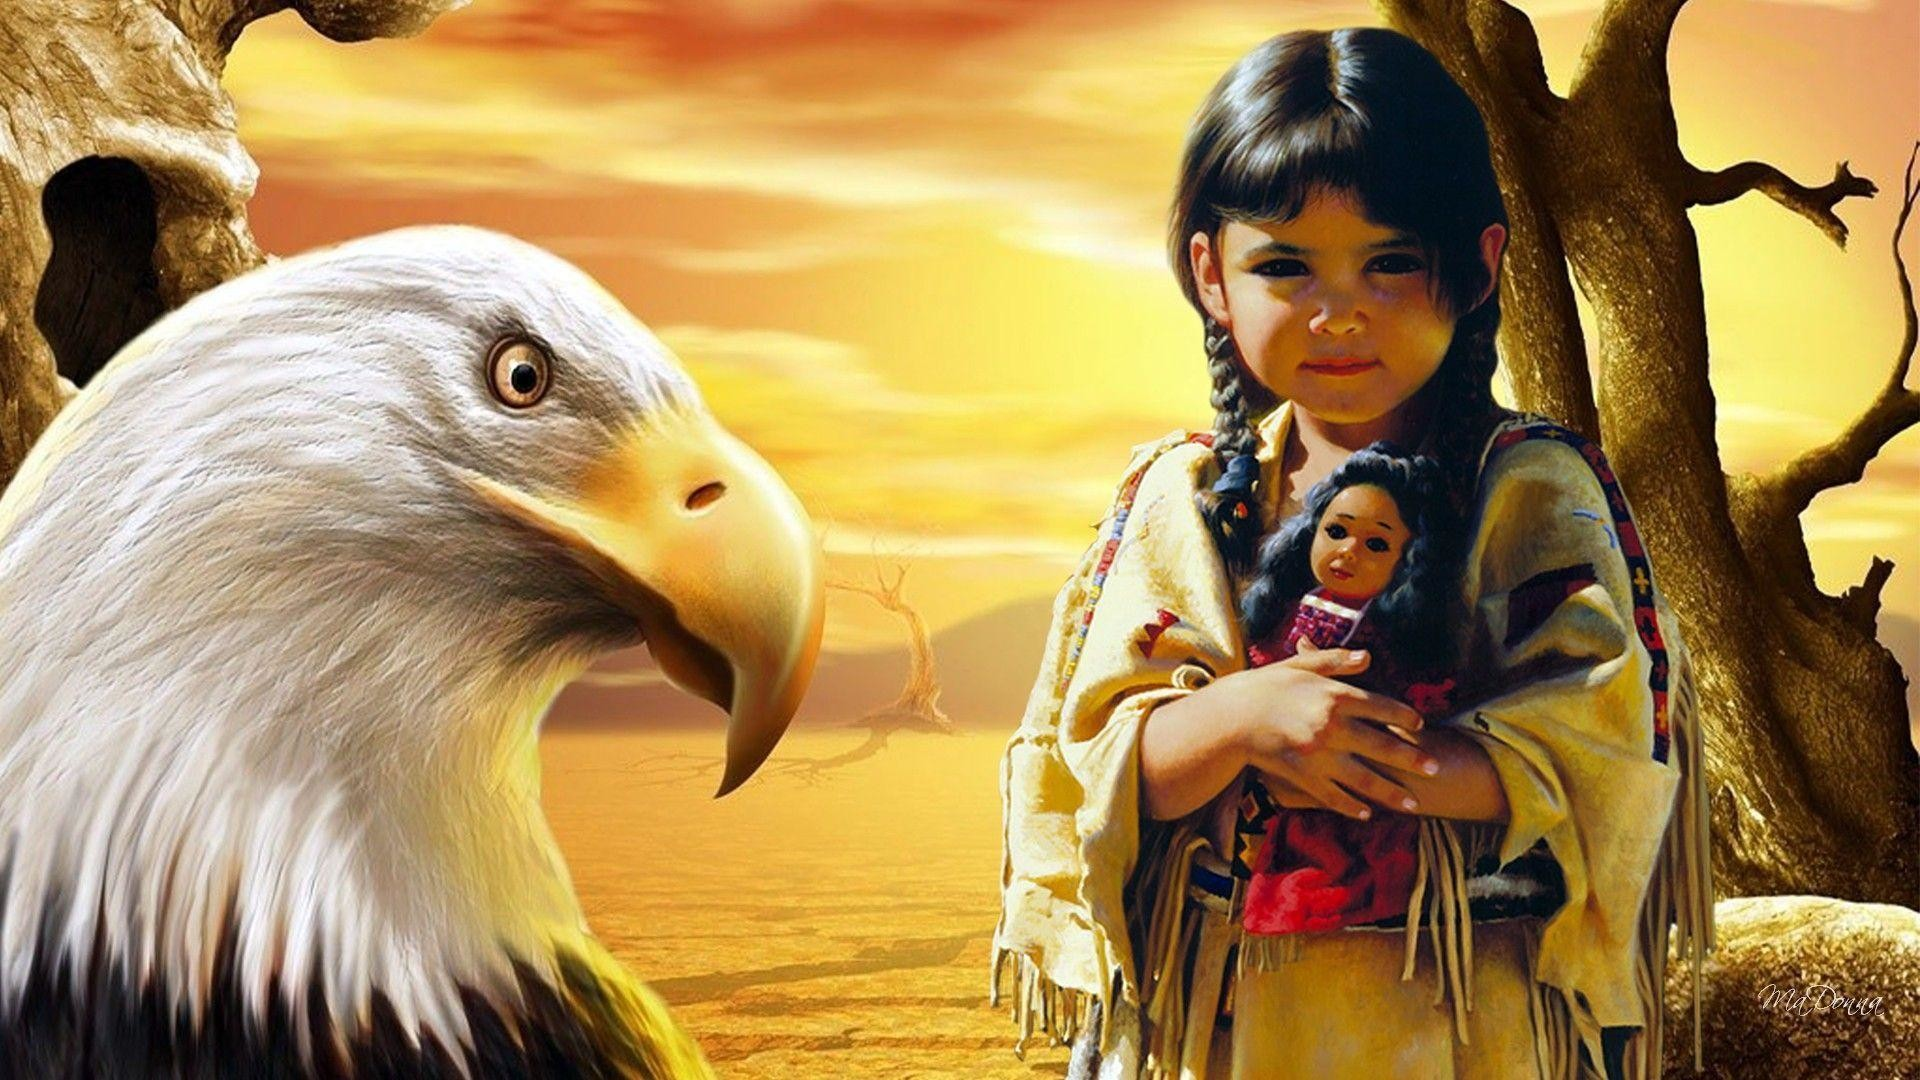 Free Native American Wallpaper 104624 High Definition Wallpapers .